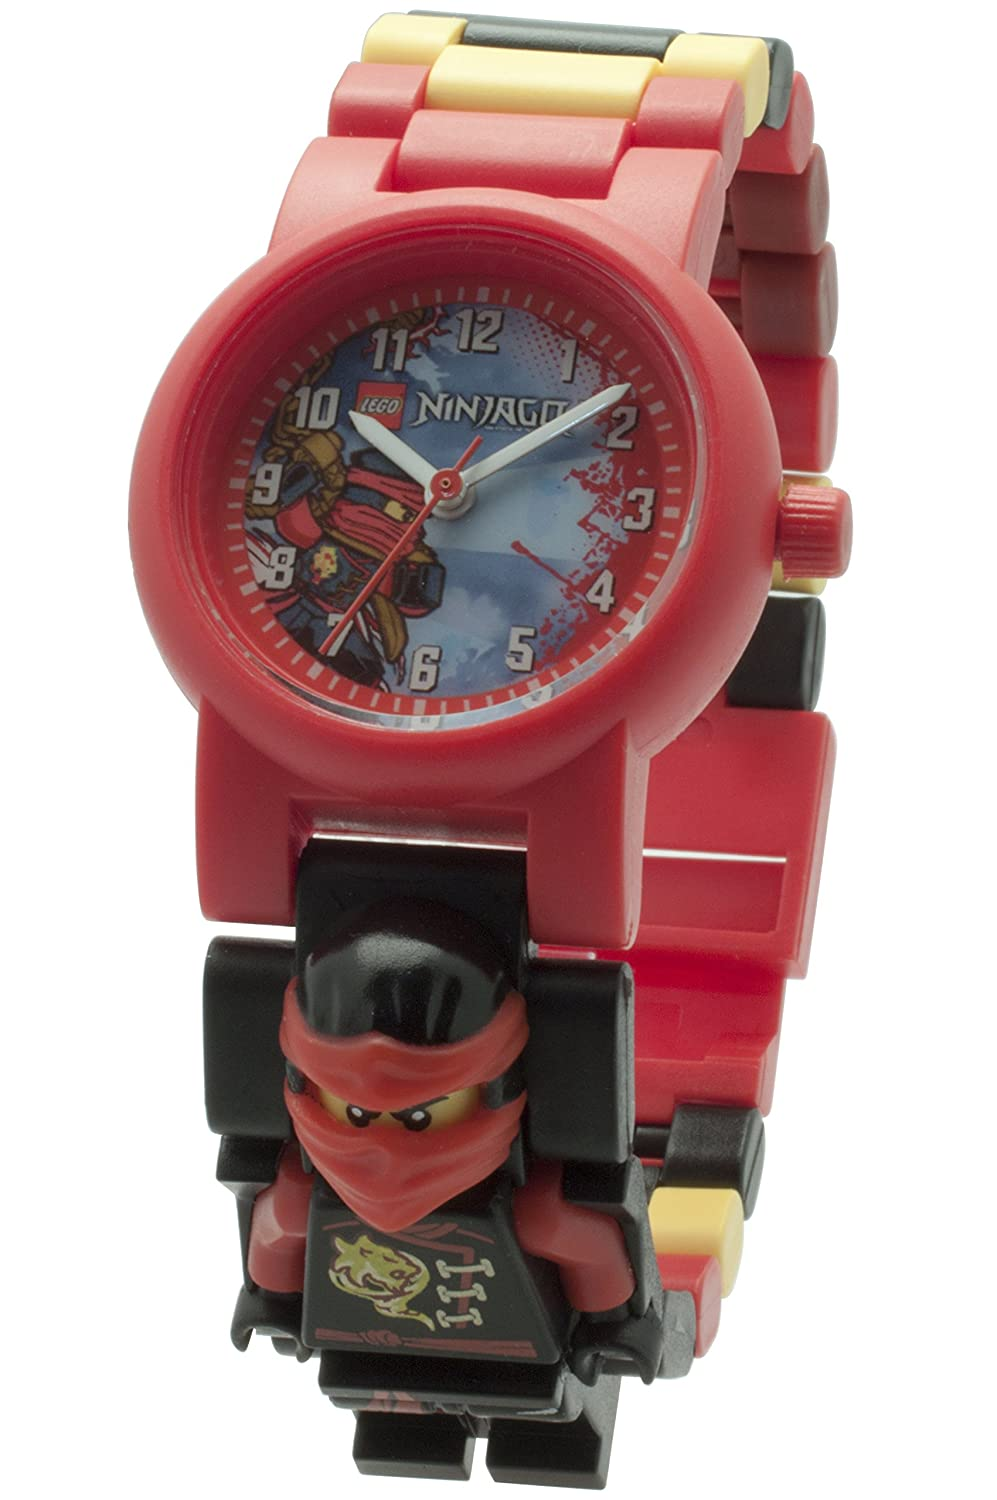 Amazon.com: LEGO toy watch choose a ninjago character link watch Kai: Toys & Games